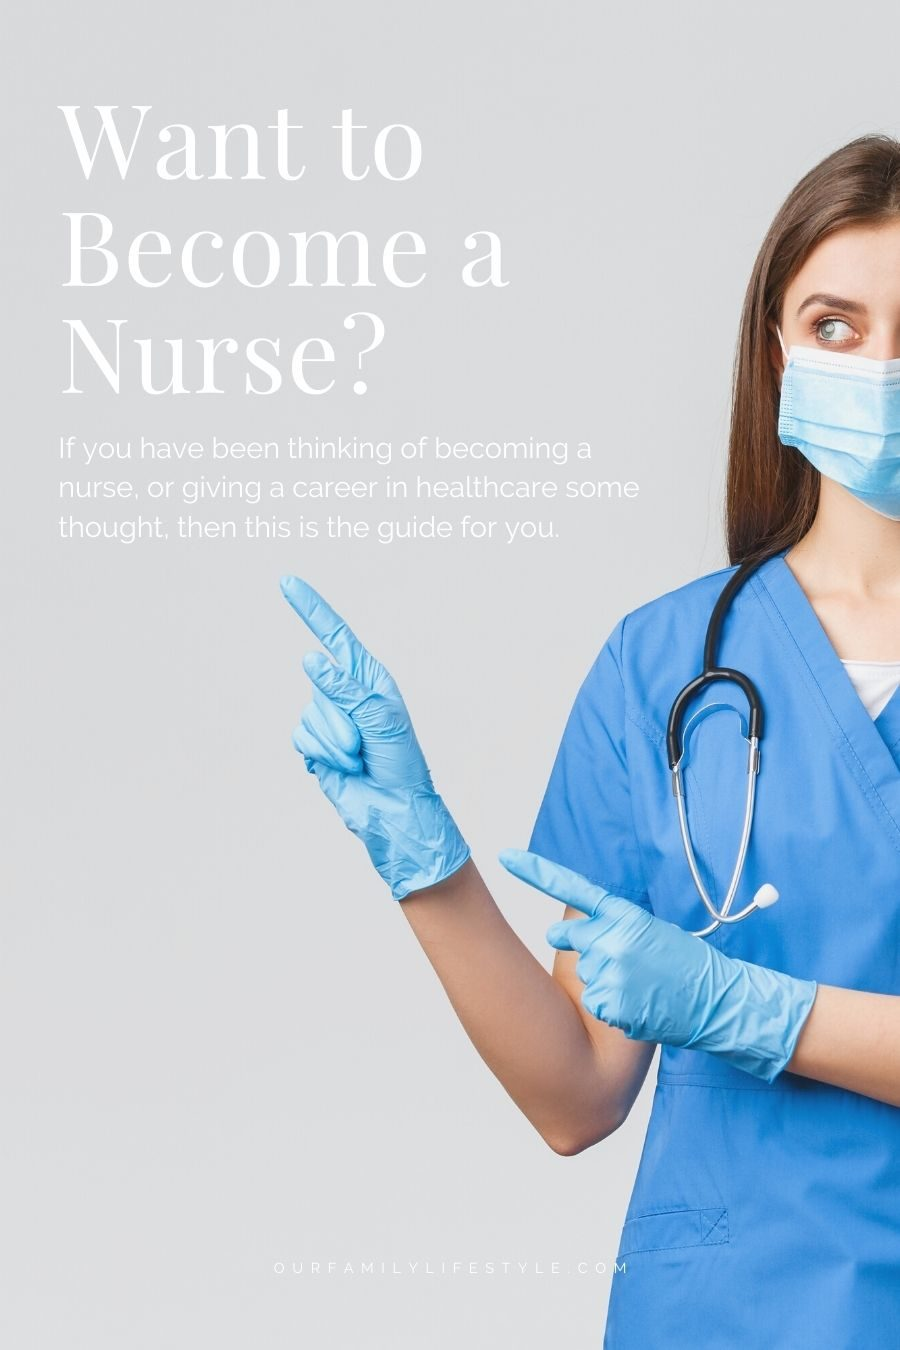 Want to Become a Nurse Maybe a Career in Healthcare is for You